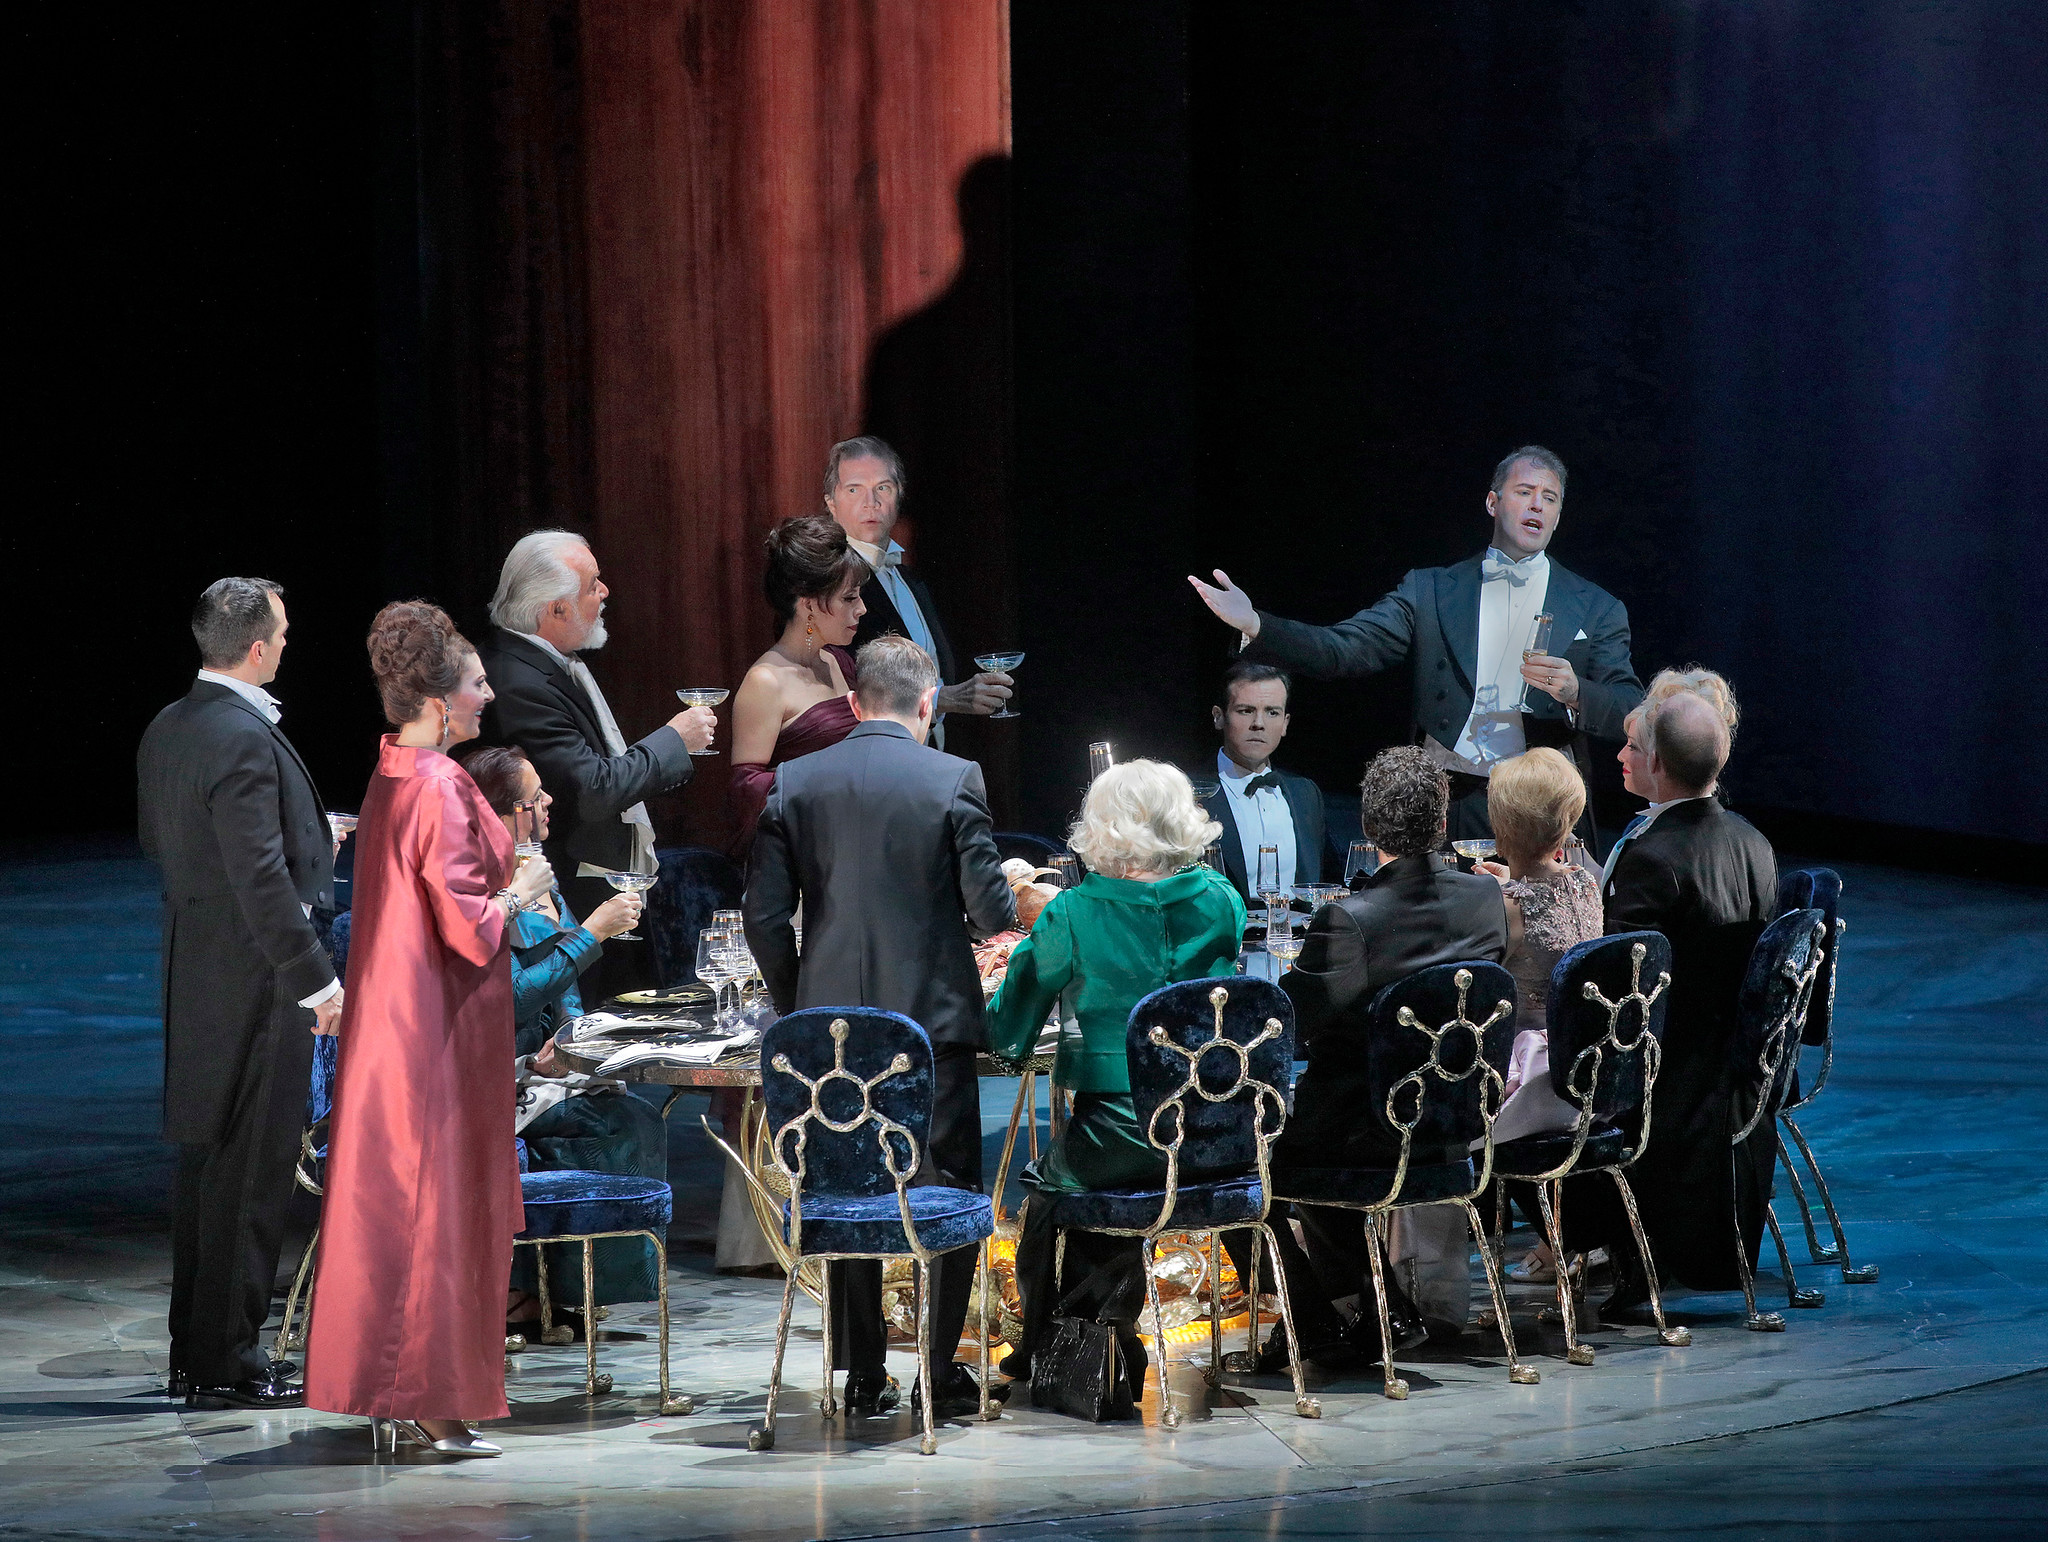 Society manners and personas rule the beginning of the dinner party in The Exterminating Angel. Photo by Ken Howard; courtesy of the Metropolitan Opera.